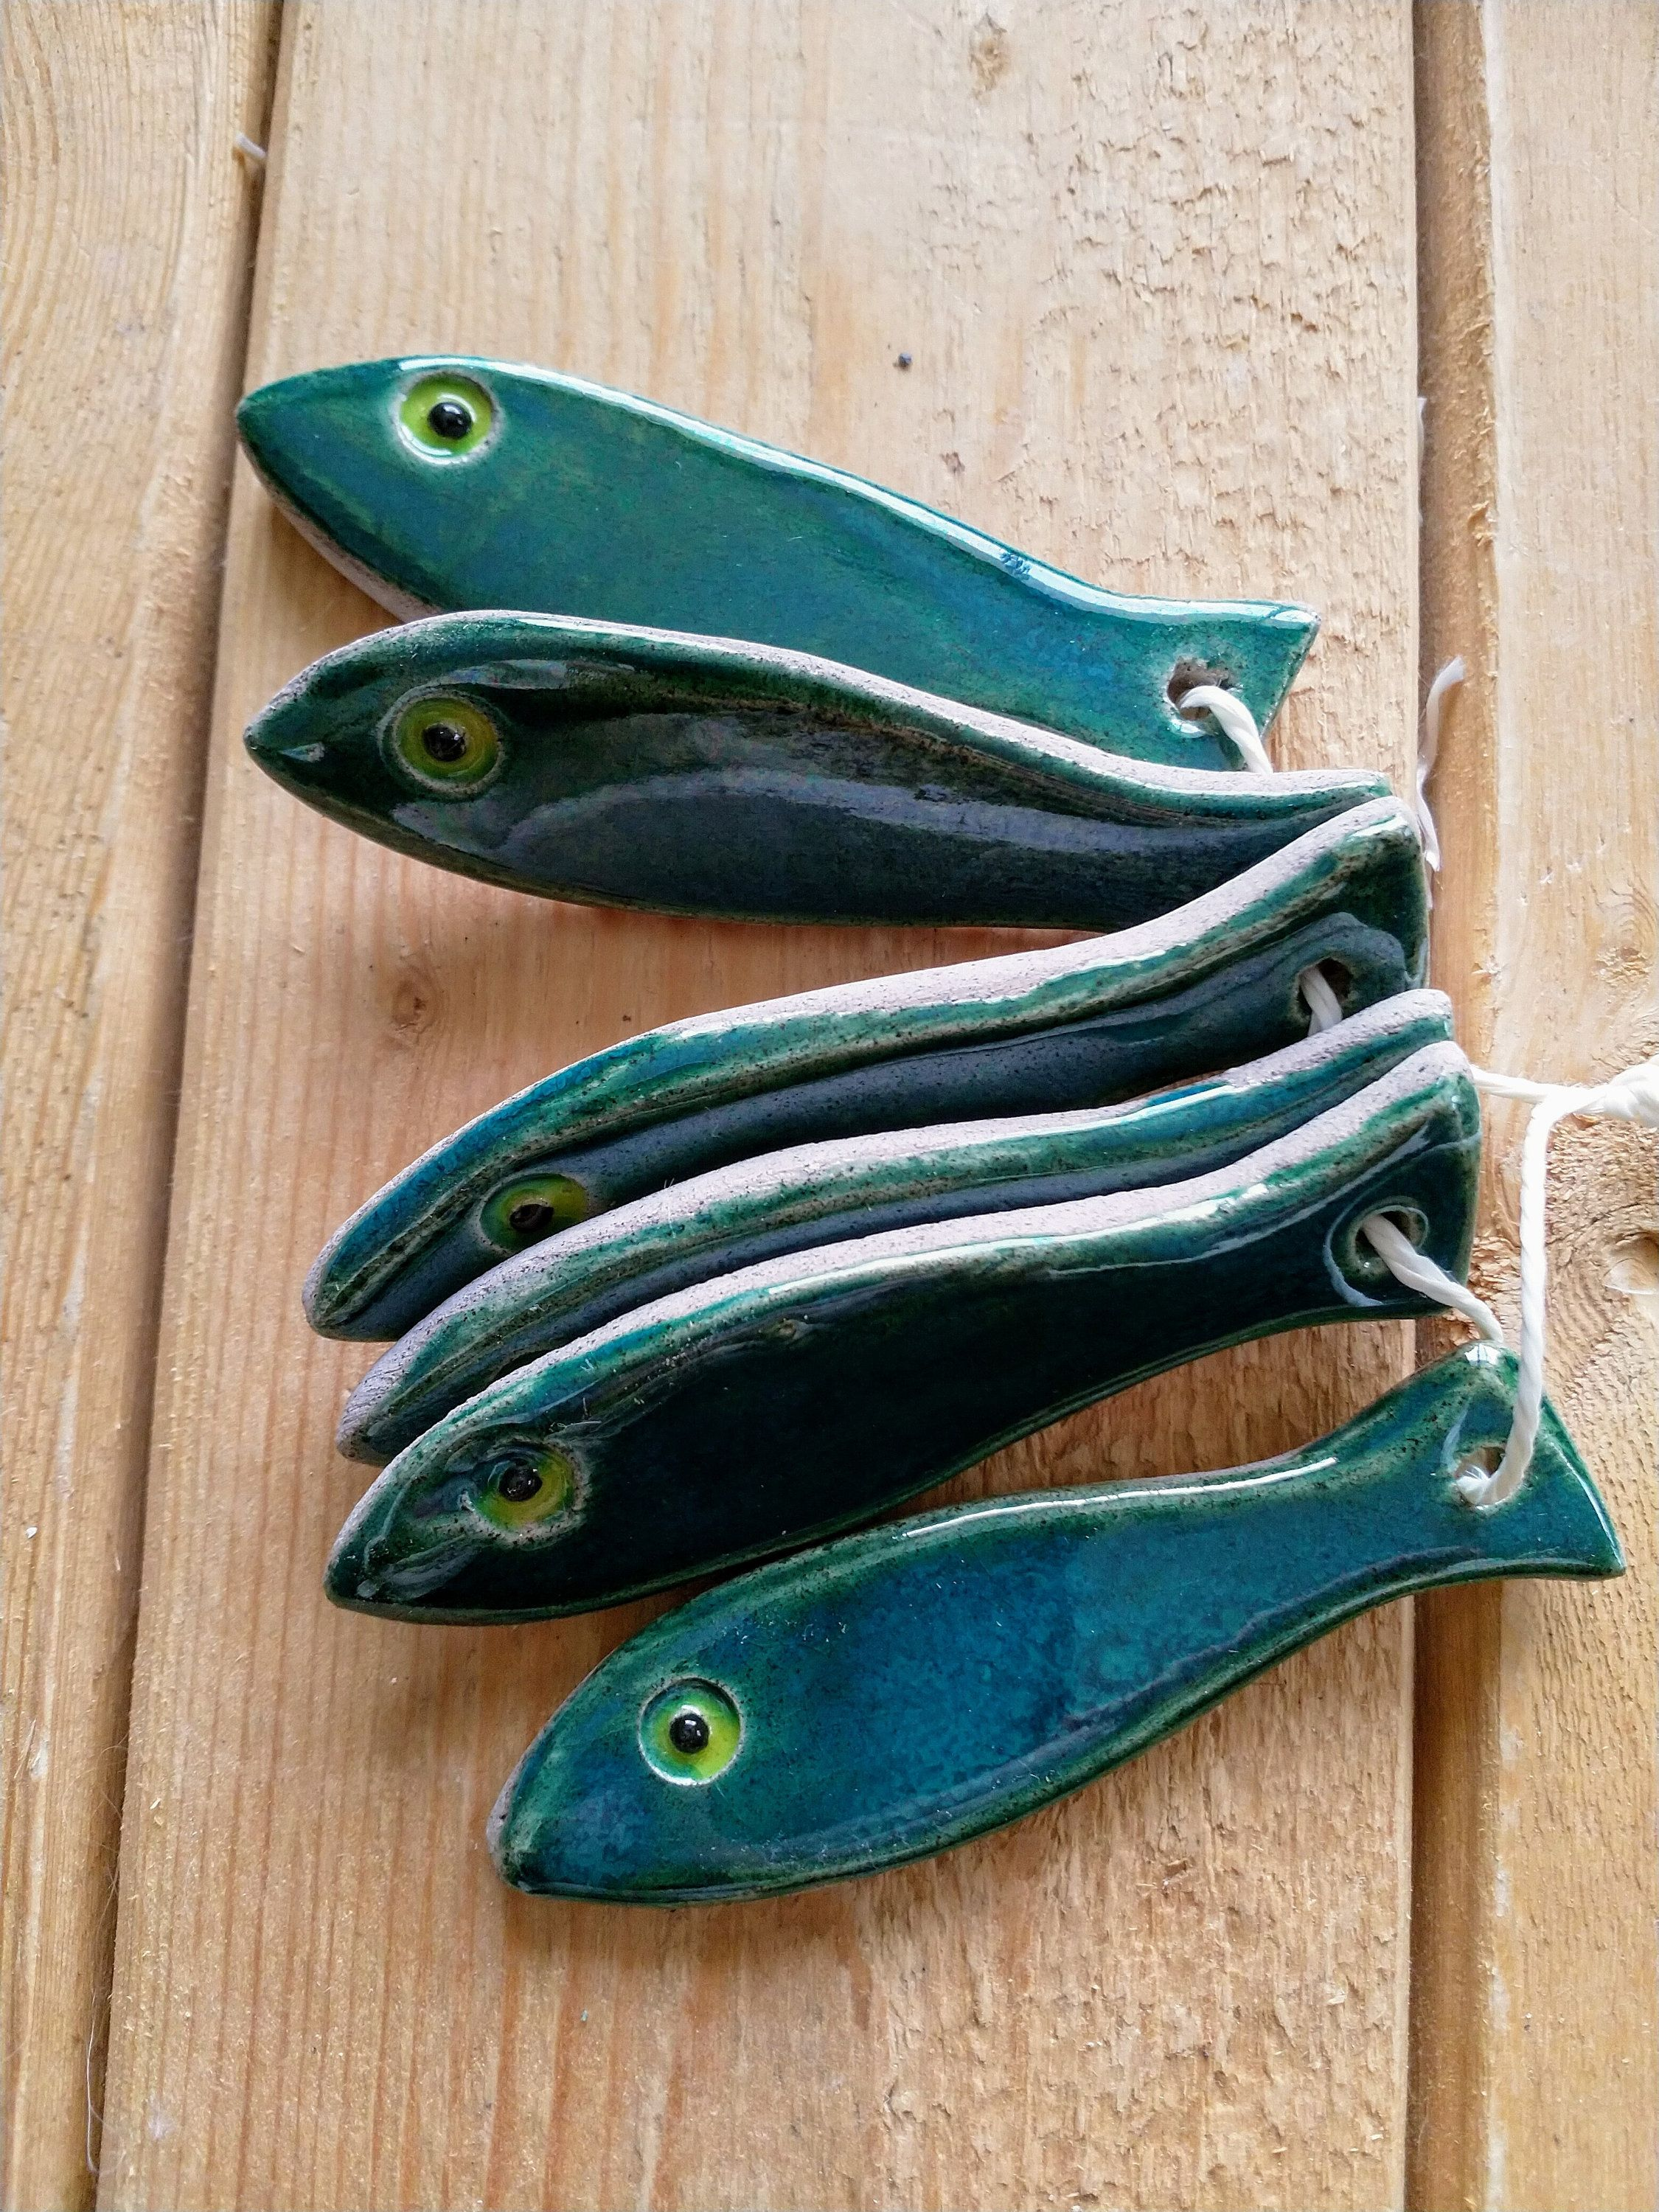 Boutique Art Et Decoration Set 8 Sardine Knife Rests Wall Decor In 2019 Céramique Et